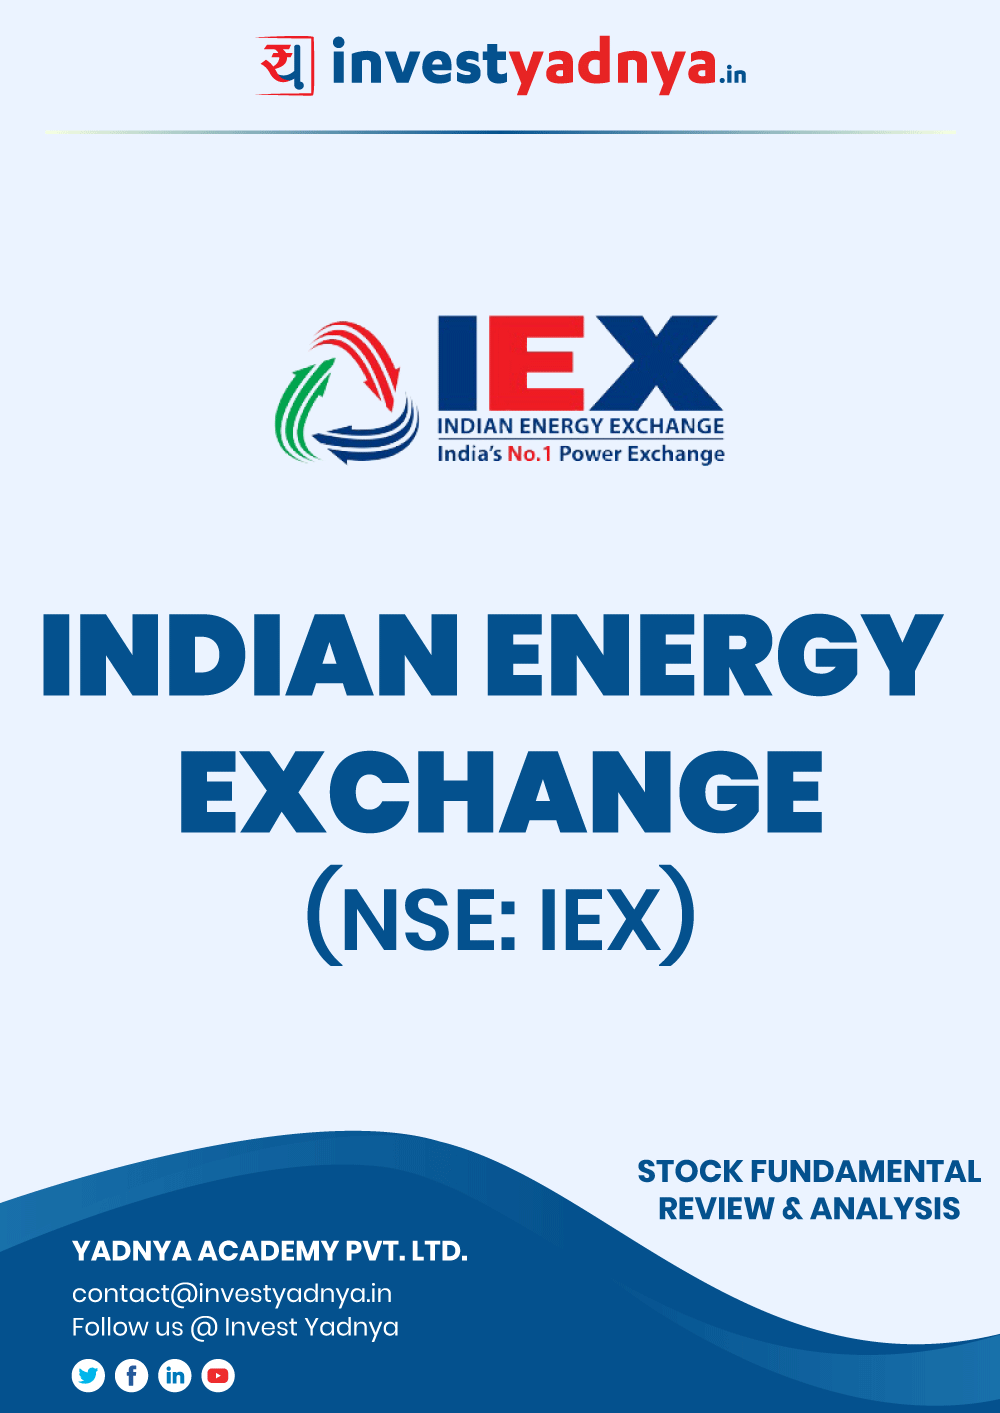 This e-book contains in-depth fundamental analysis of Indian Energy Exchange considering both Financial and Equity Research Parameters. It reviews the company, industry competitors, governance, financials, and valuations. ✔ Detailed Research ✔ Quality Reports